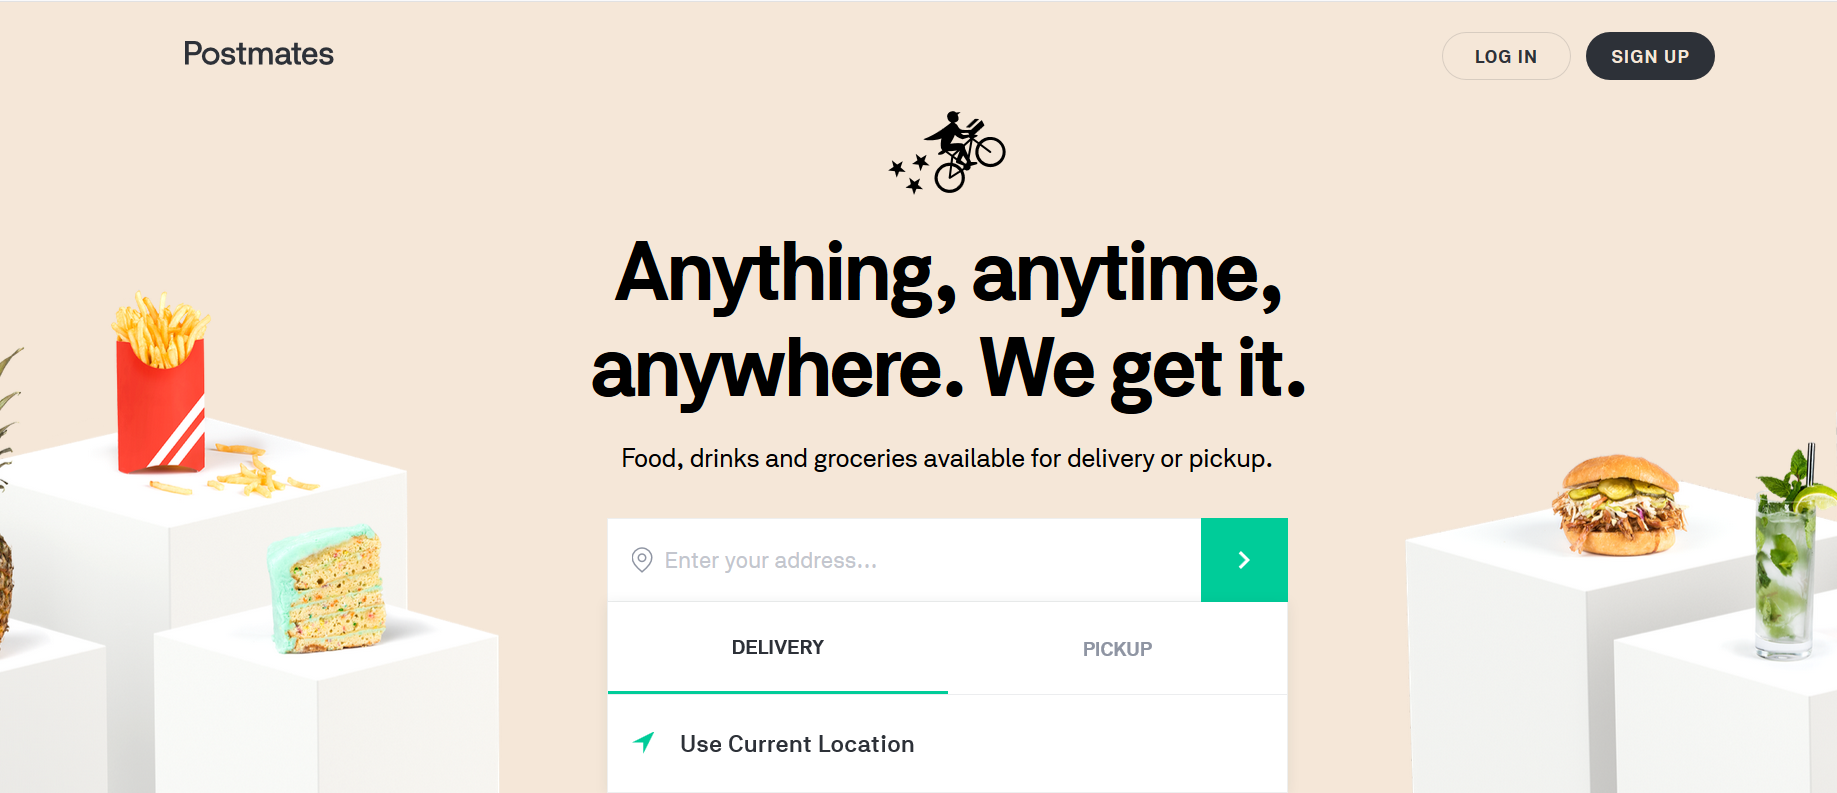 Postmates Review - Why Should You be a Delivery Driver for